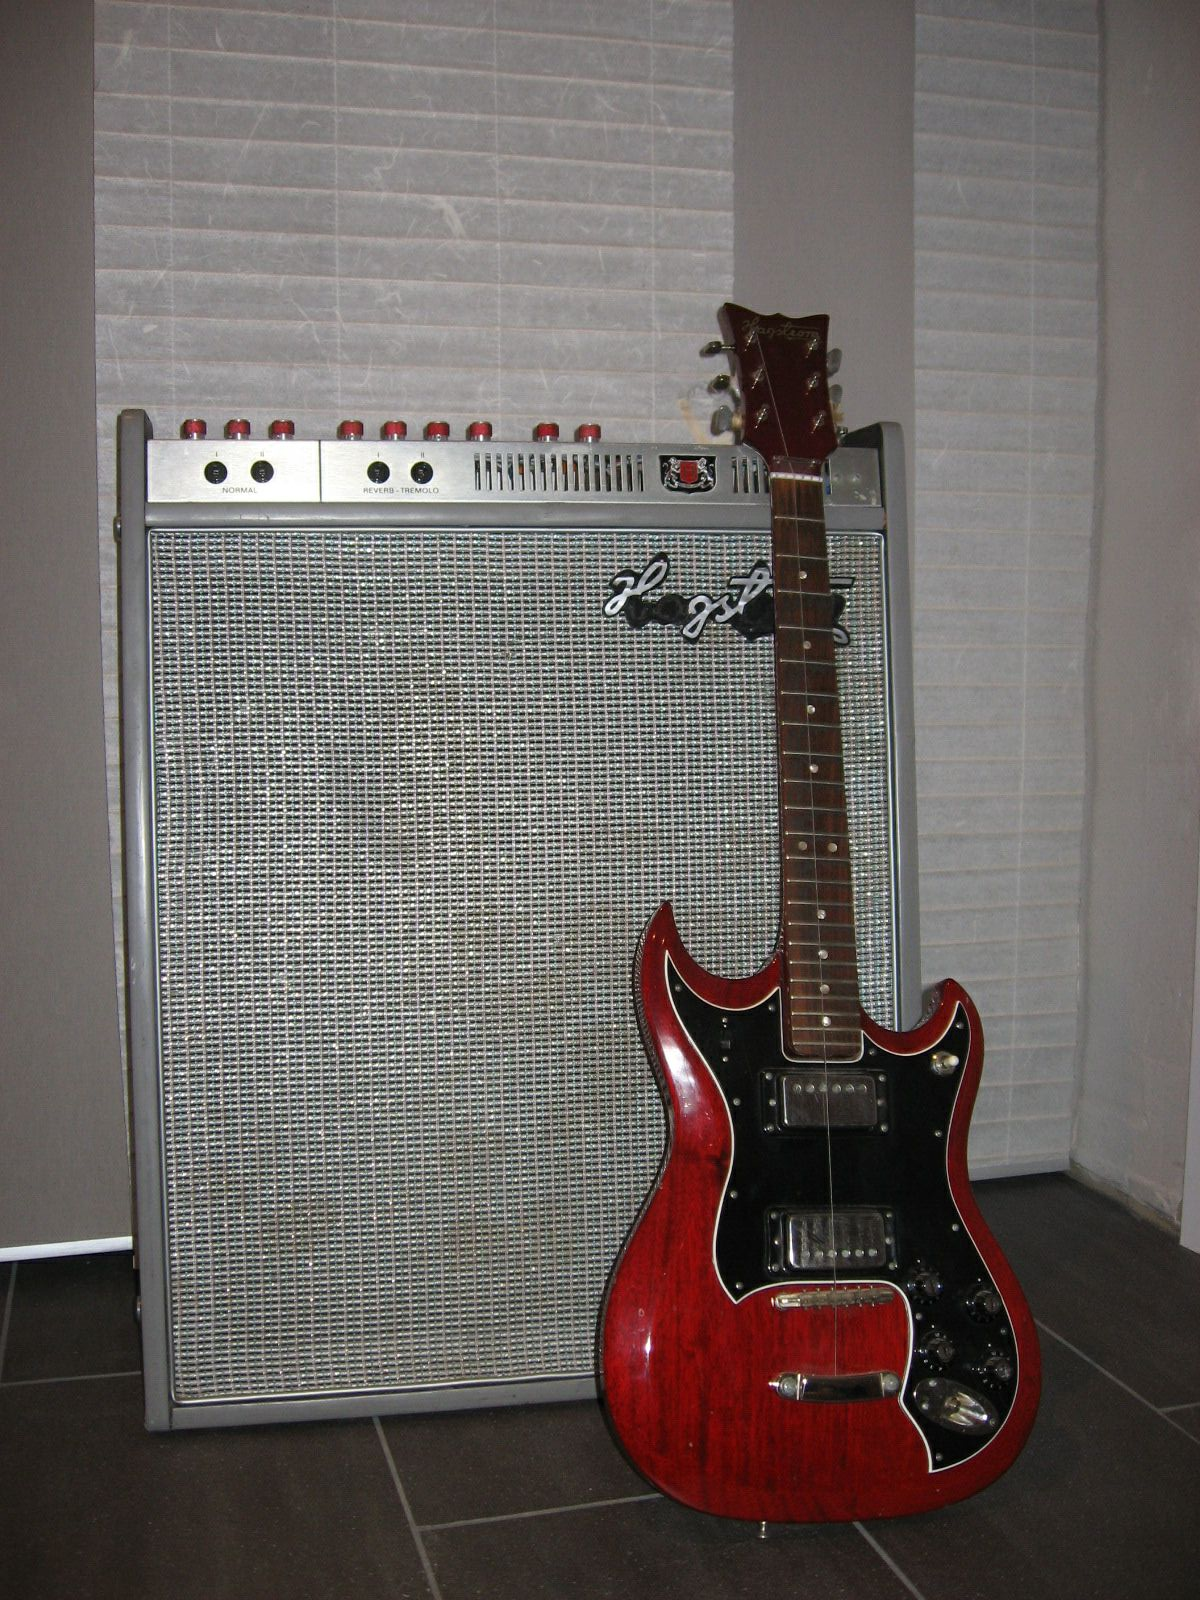 http://upload.wikimedia.org/wikipedia/commons/3/36/Hagstrom_guitar_and_amplifier.jpg